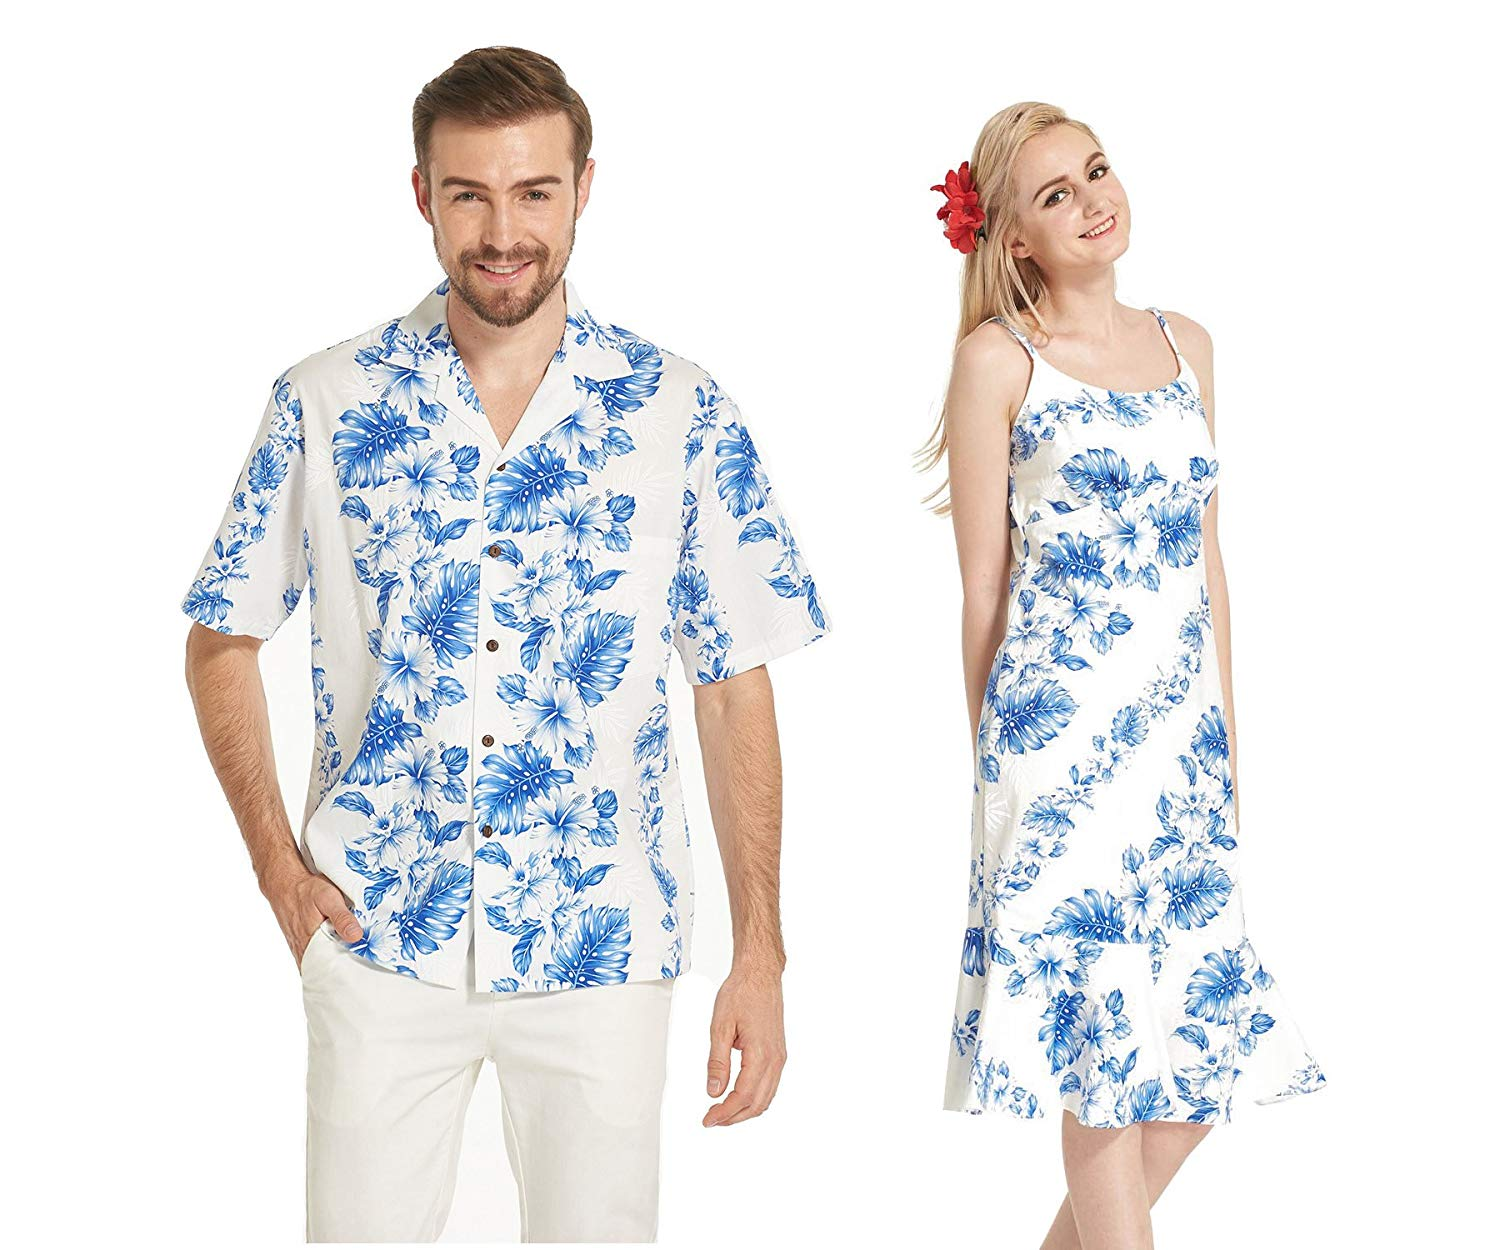 a593ddab3f91 Get Quotations · Made in Hawaii Premium Couple Matching Luau Aloha Shirt  Dress Floral Blue Line Floral in White